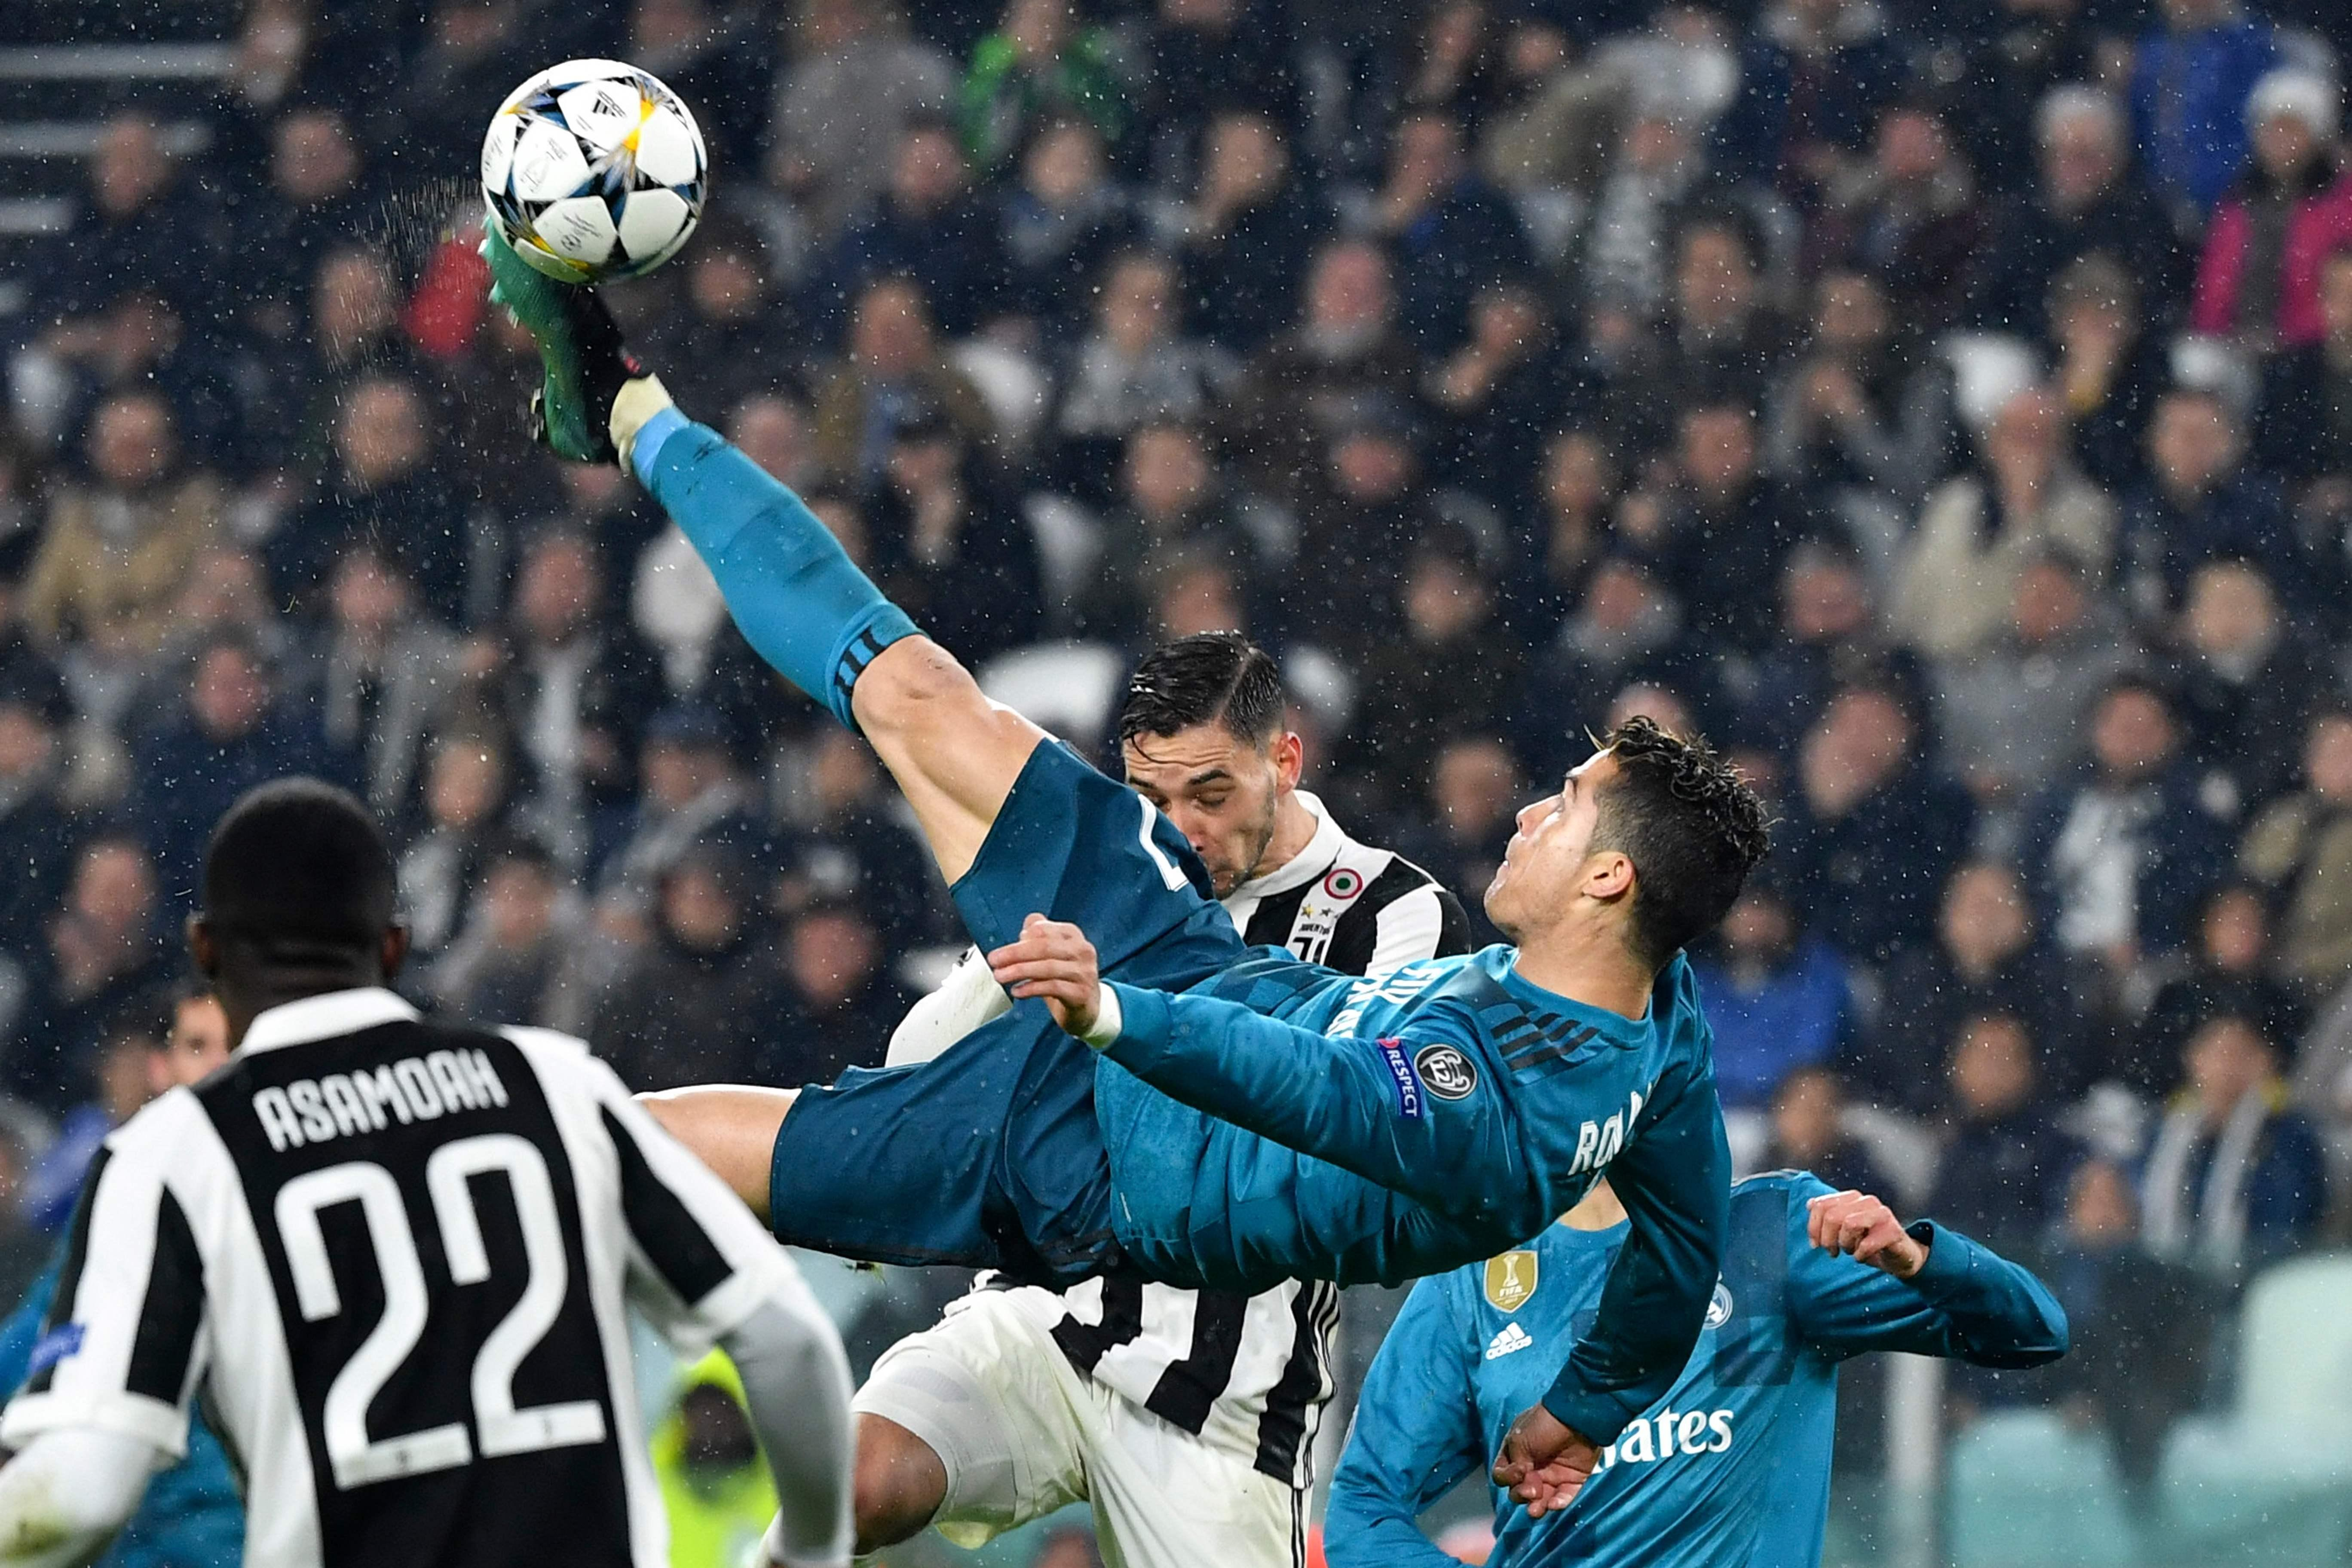 Fitting that perhaps his greatest Real Madrid goal came against Juventus